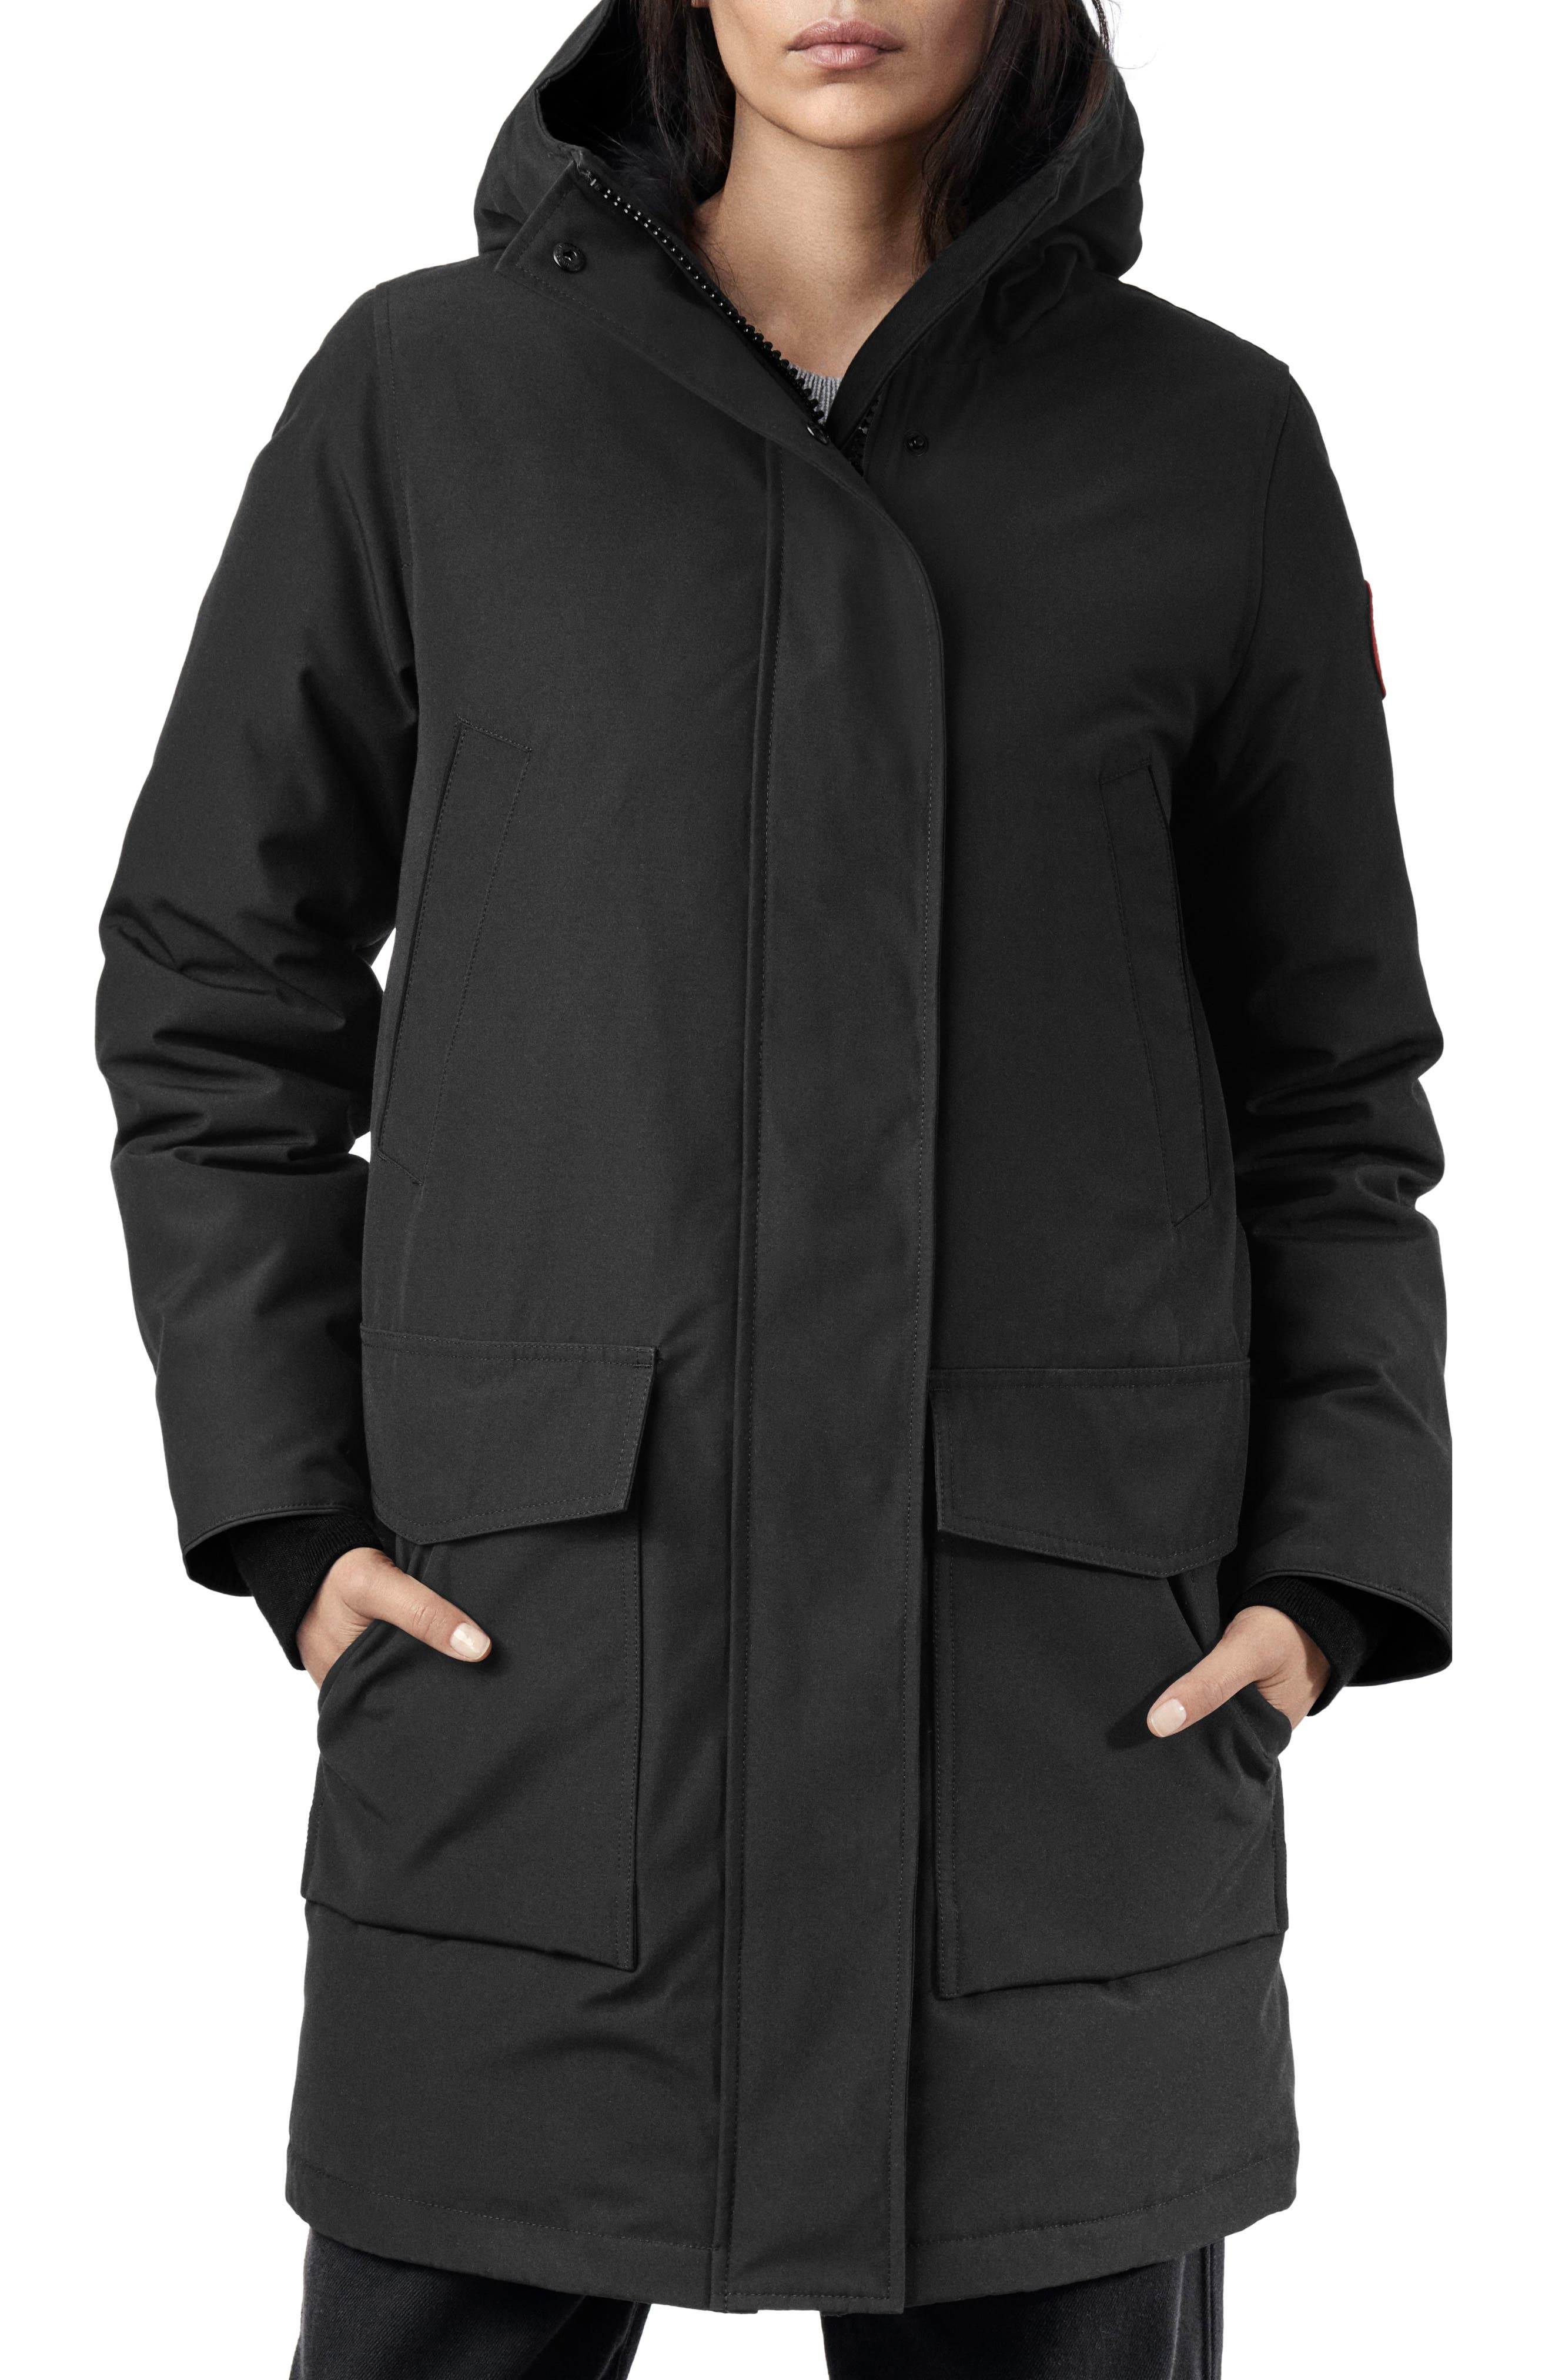 CANADA GOOSE, Canmore 625 Fill Power Down Parka, Main thumbnail 1, color, BLACK